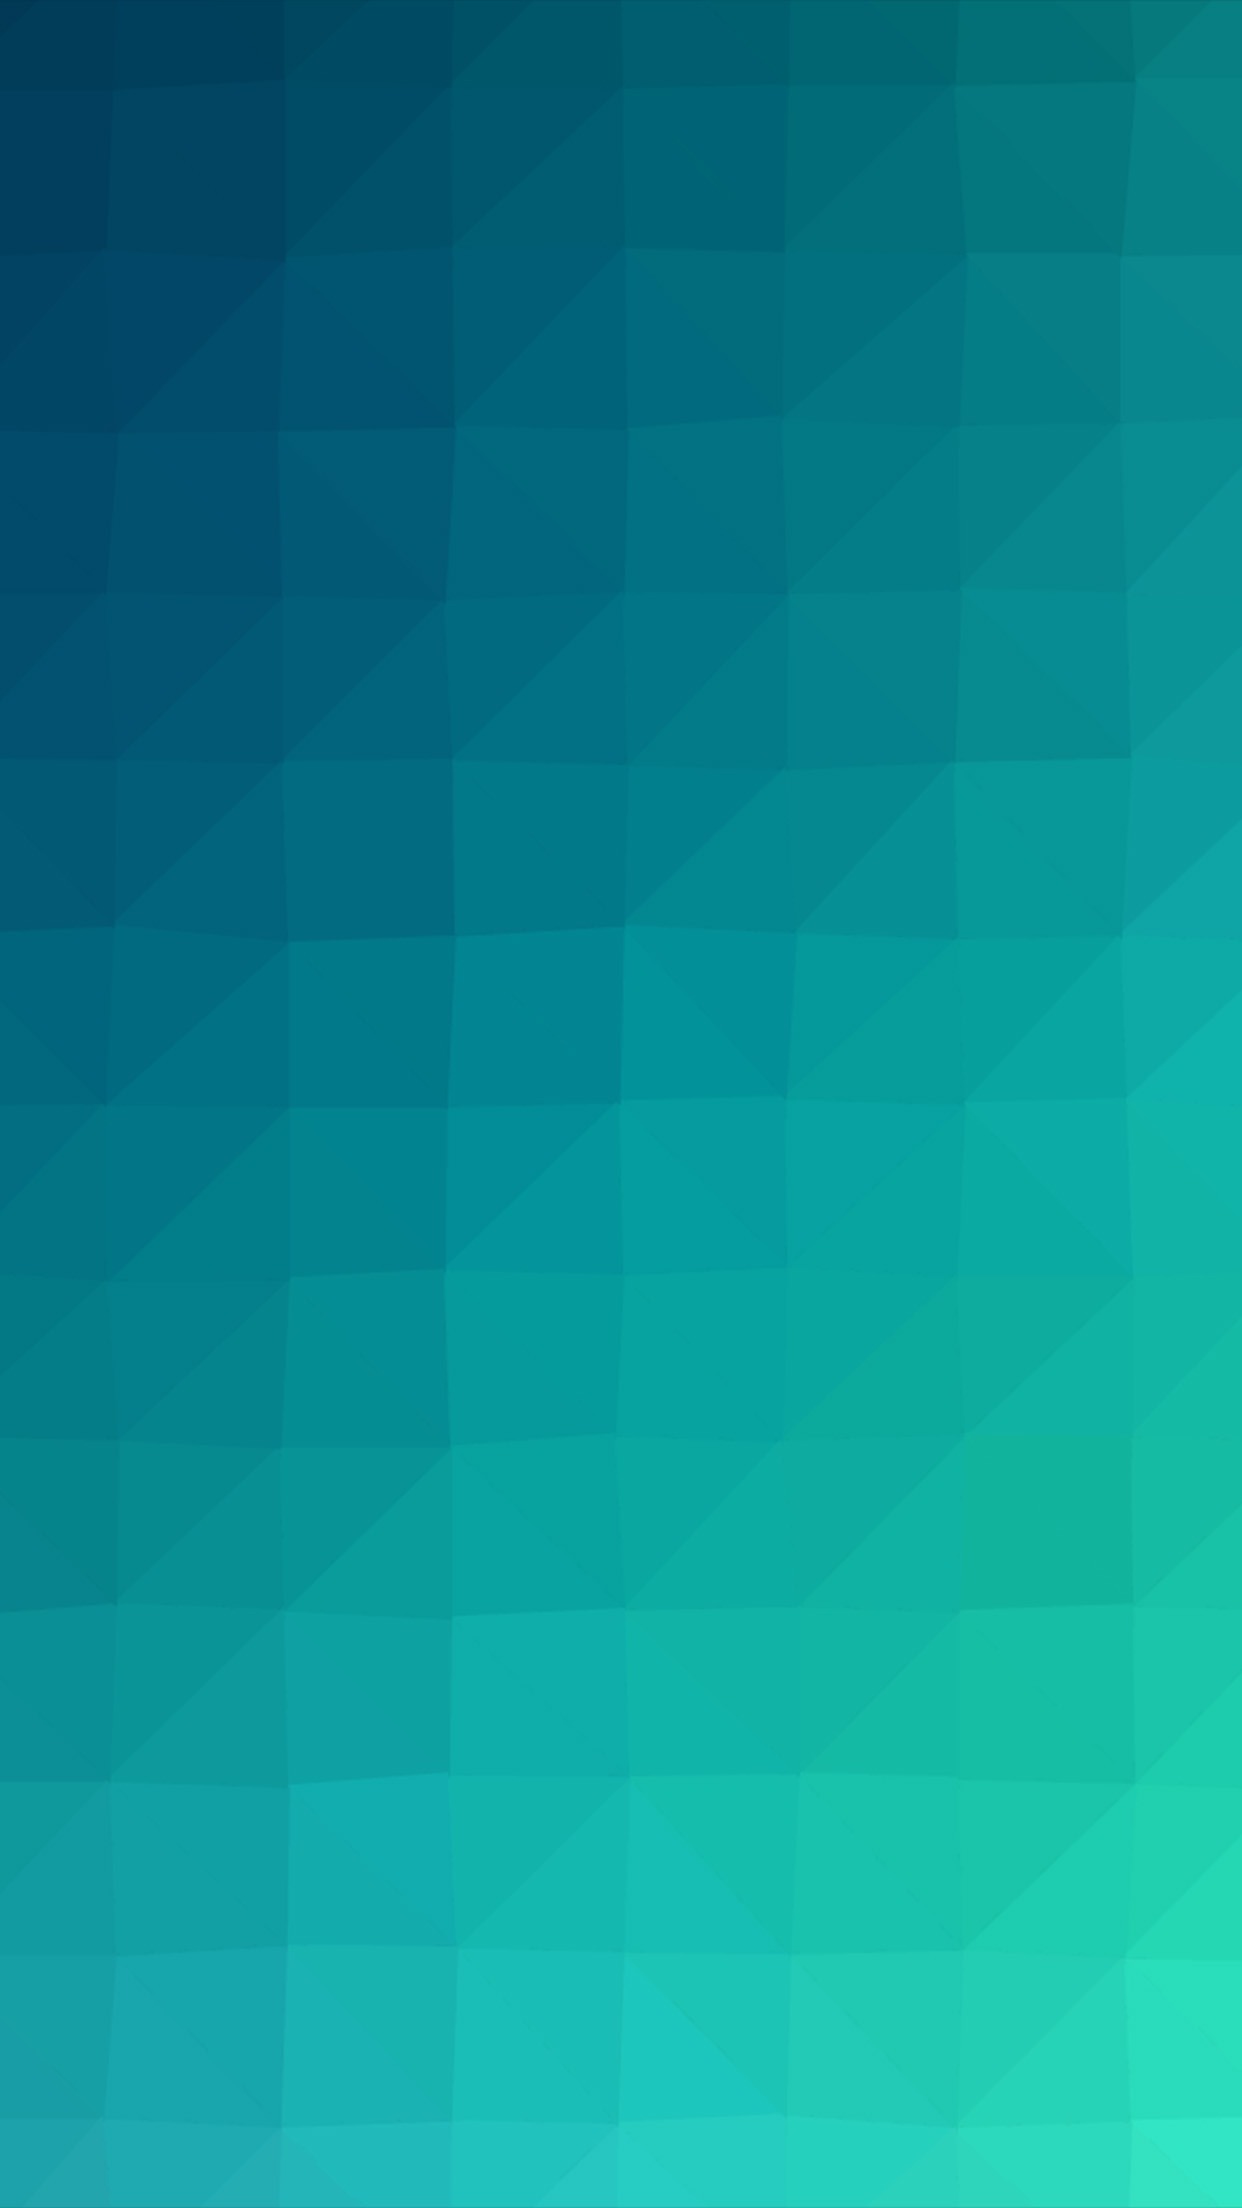 Blue Green Polygon Art Abstract Pattern Android Wallpaper